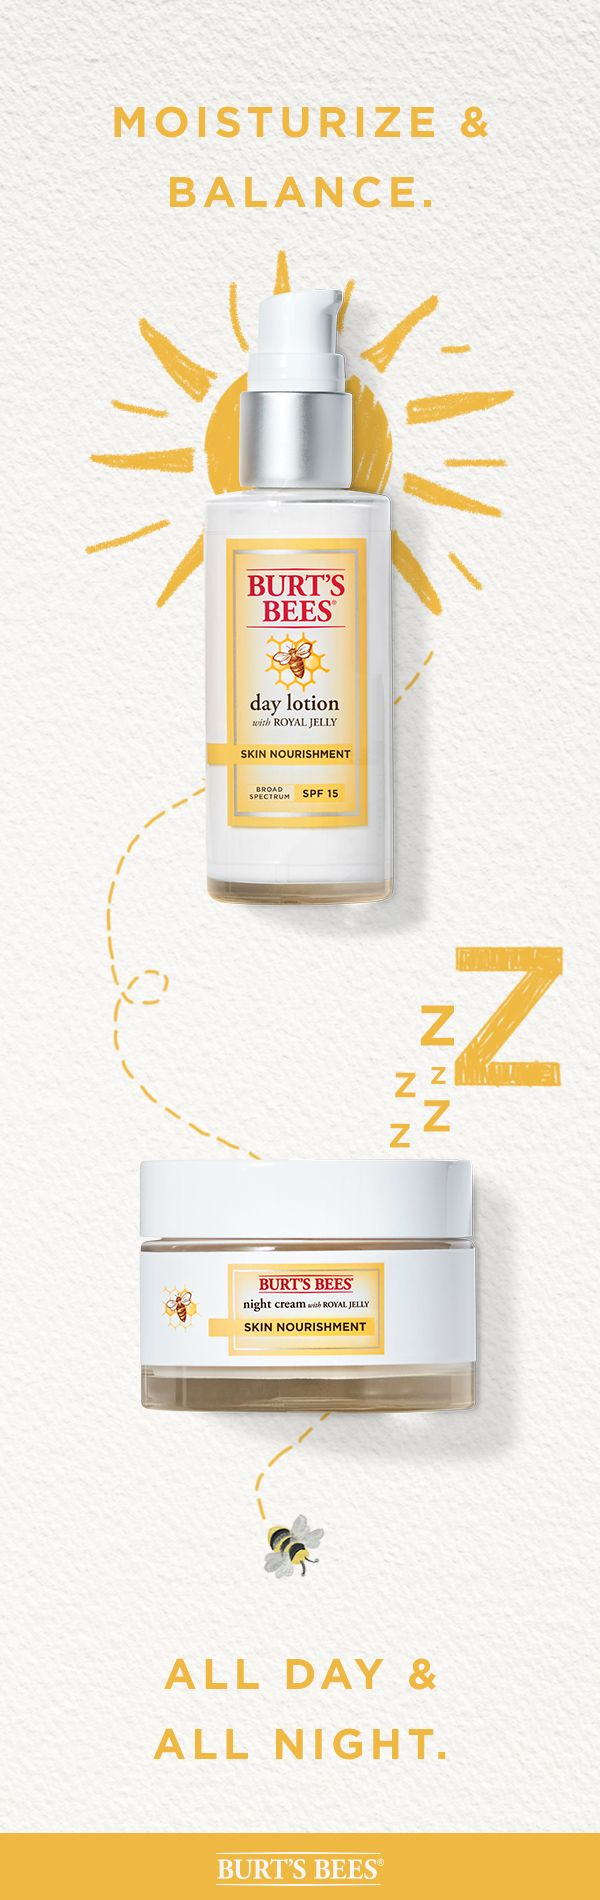 One skin care line. Two hard-working products. Too many benefits to count. Burt's Bees Skin Nourishment Day Lotion with SPF 15 and Skin Nourishment Night Cream with Royal Jelly. Start your day with a non-greasy face lotion with SPF 15 and hydrate all night with a wrinkle-reducing night cream that's the one of our best for normal to combination skin.